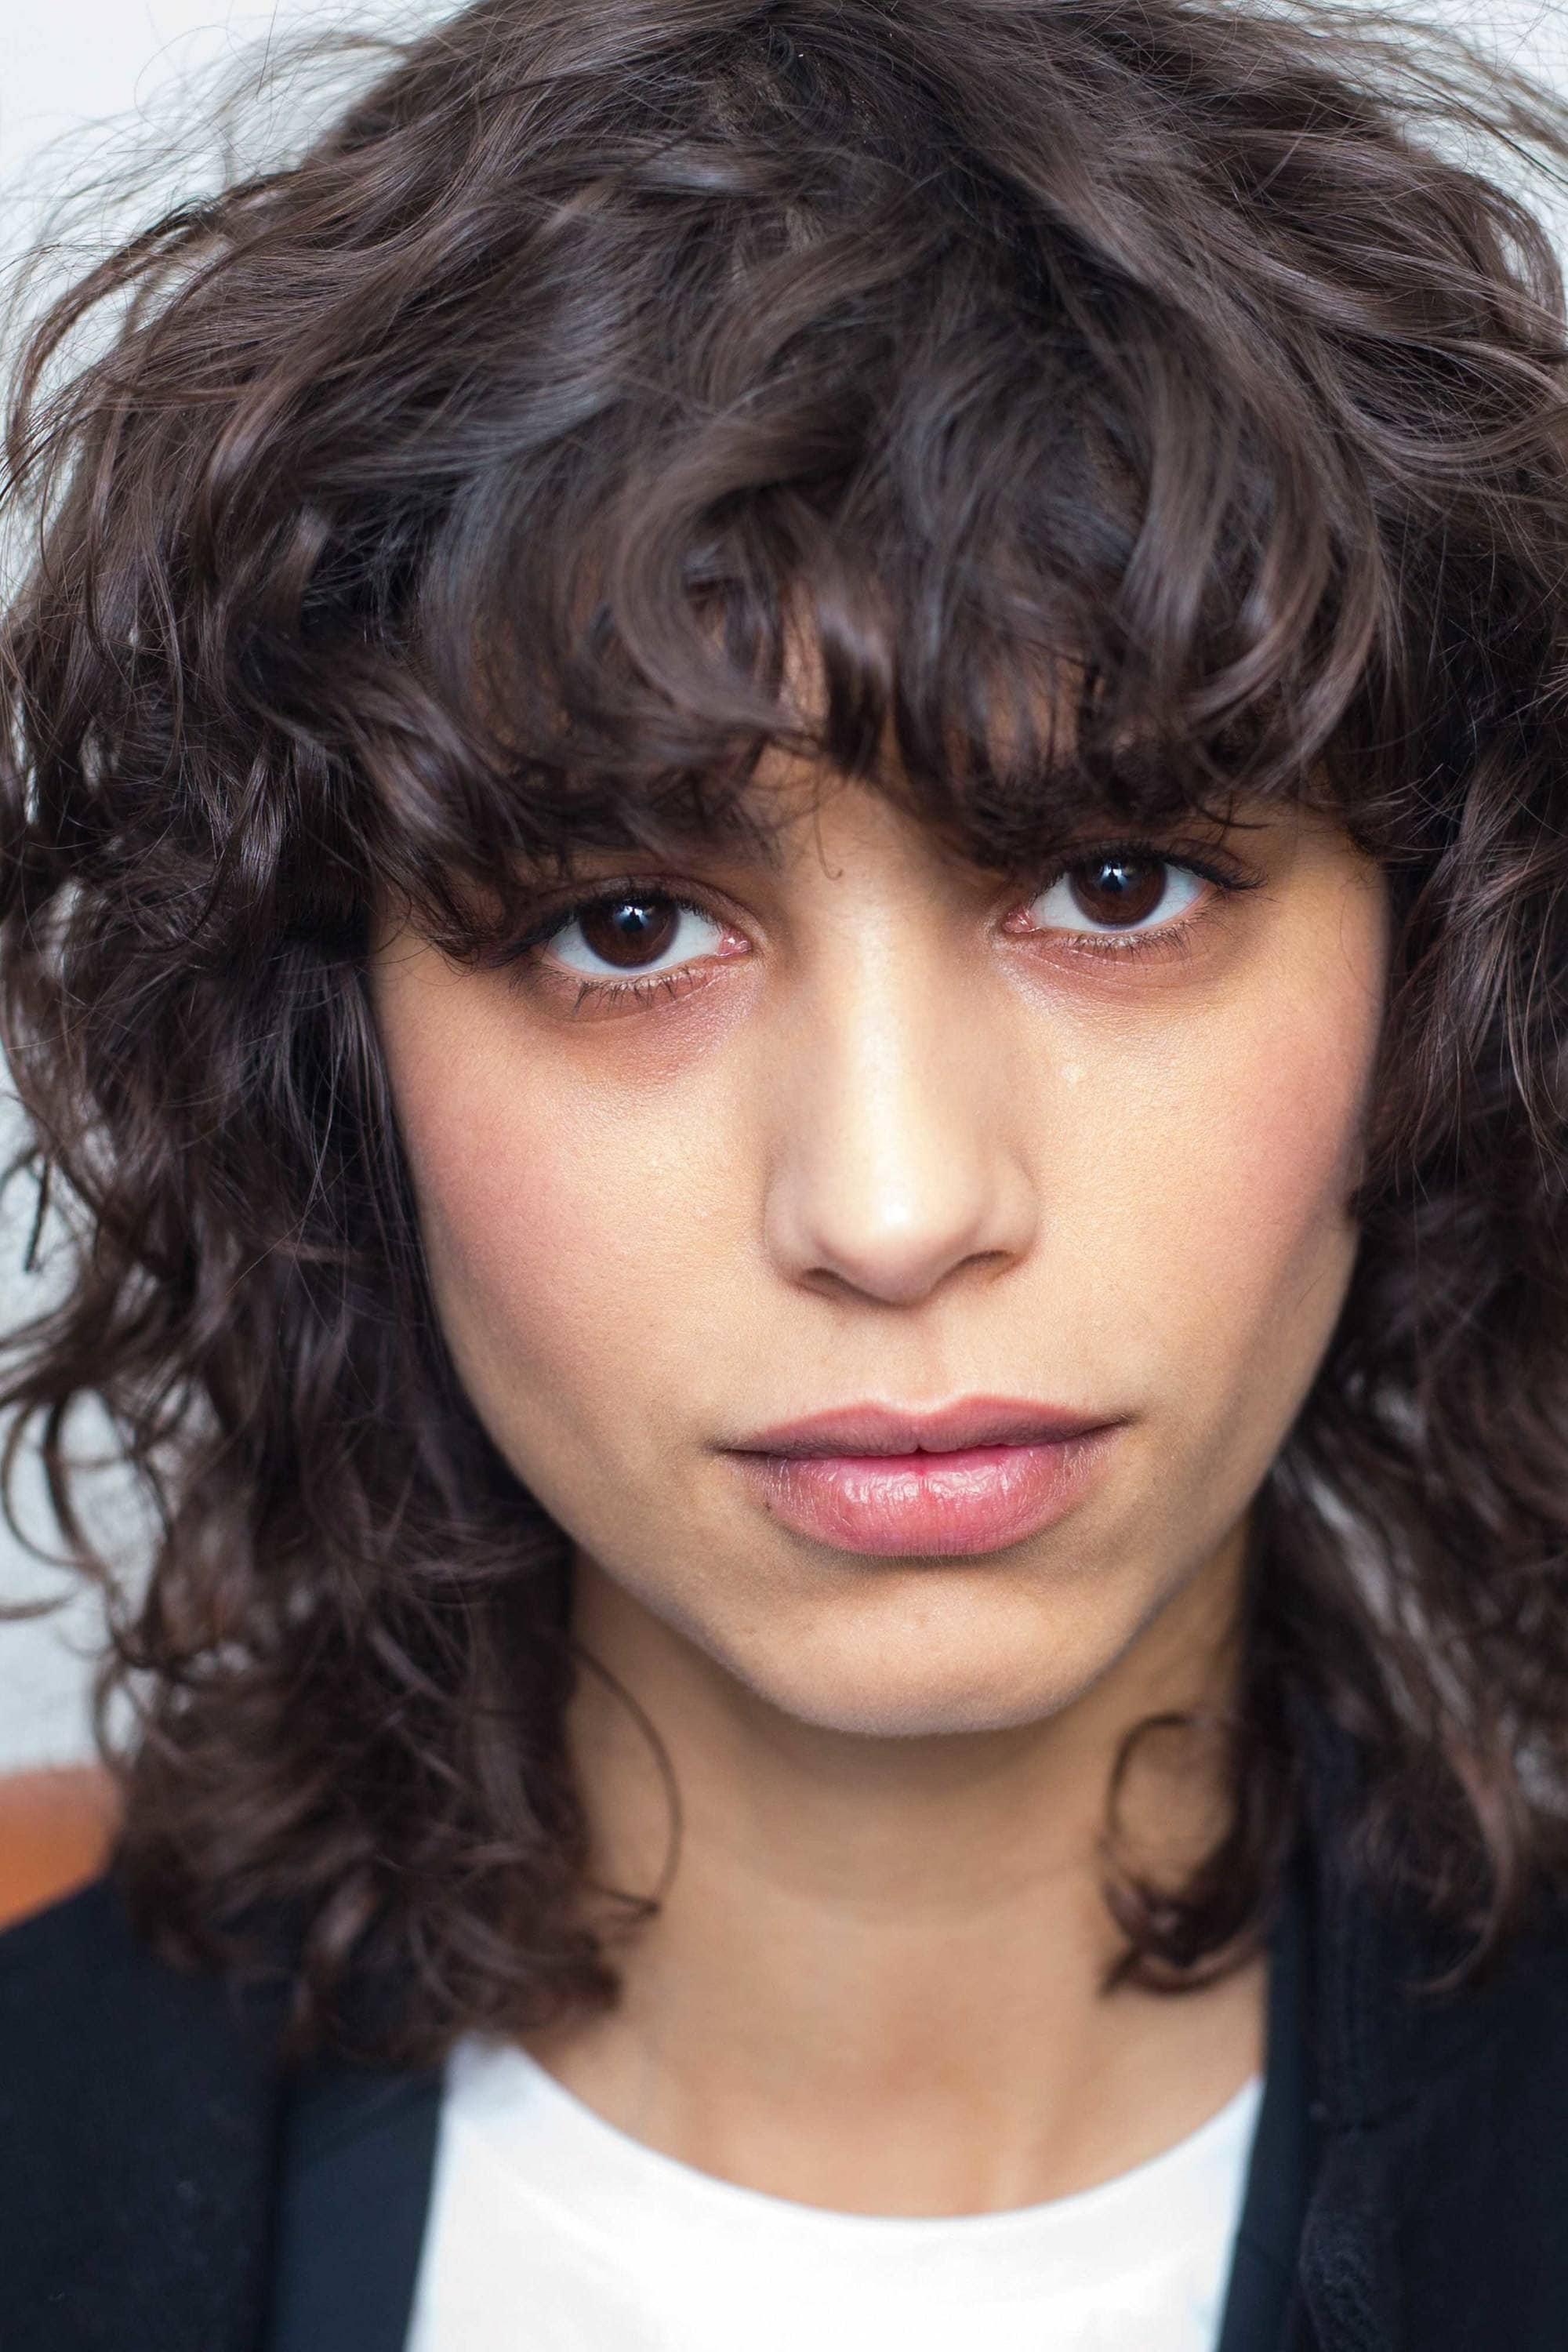 Curly Shag Bangs are one of the more natural fresh bang hairstyles